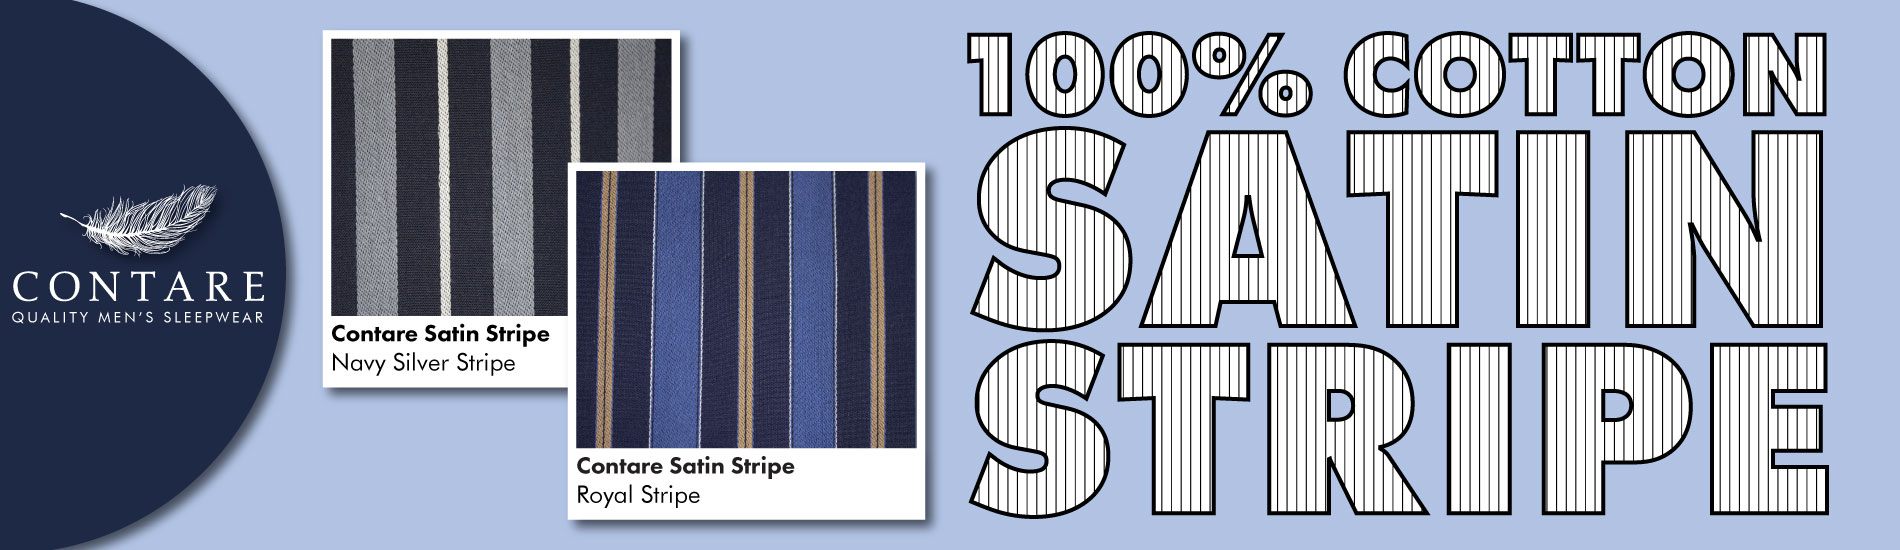 Contare-Satin-Stripe-2020